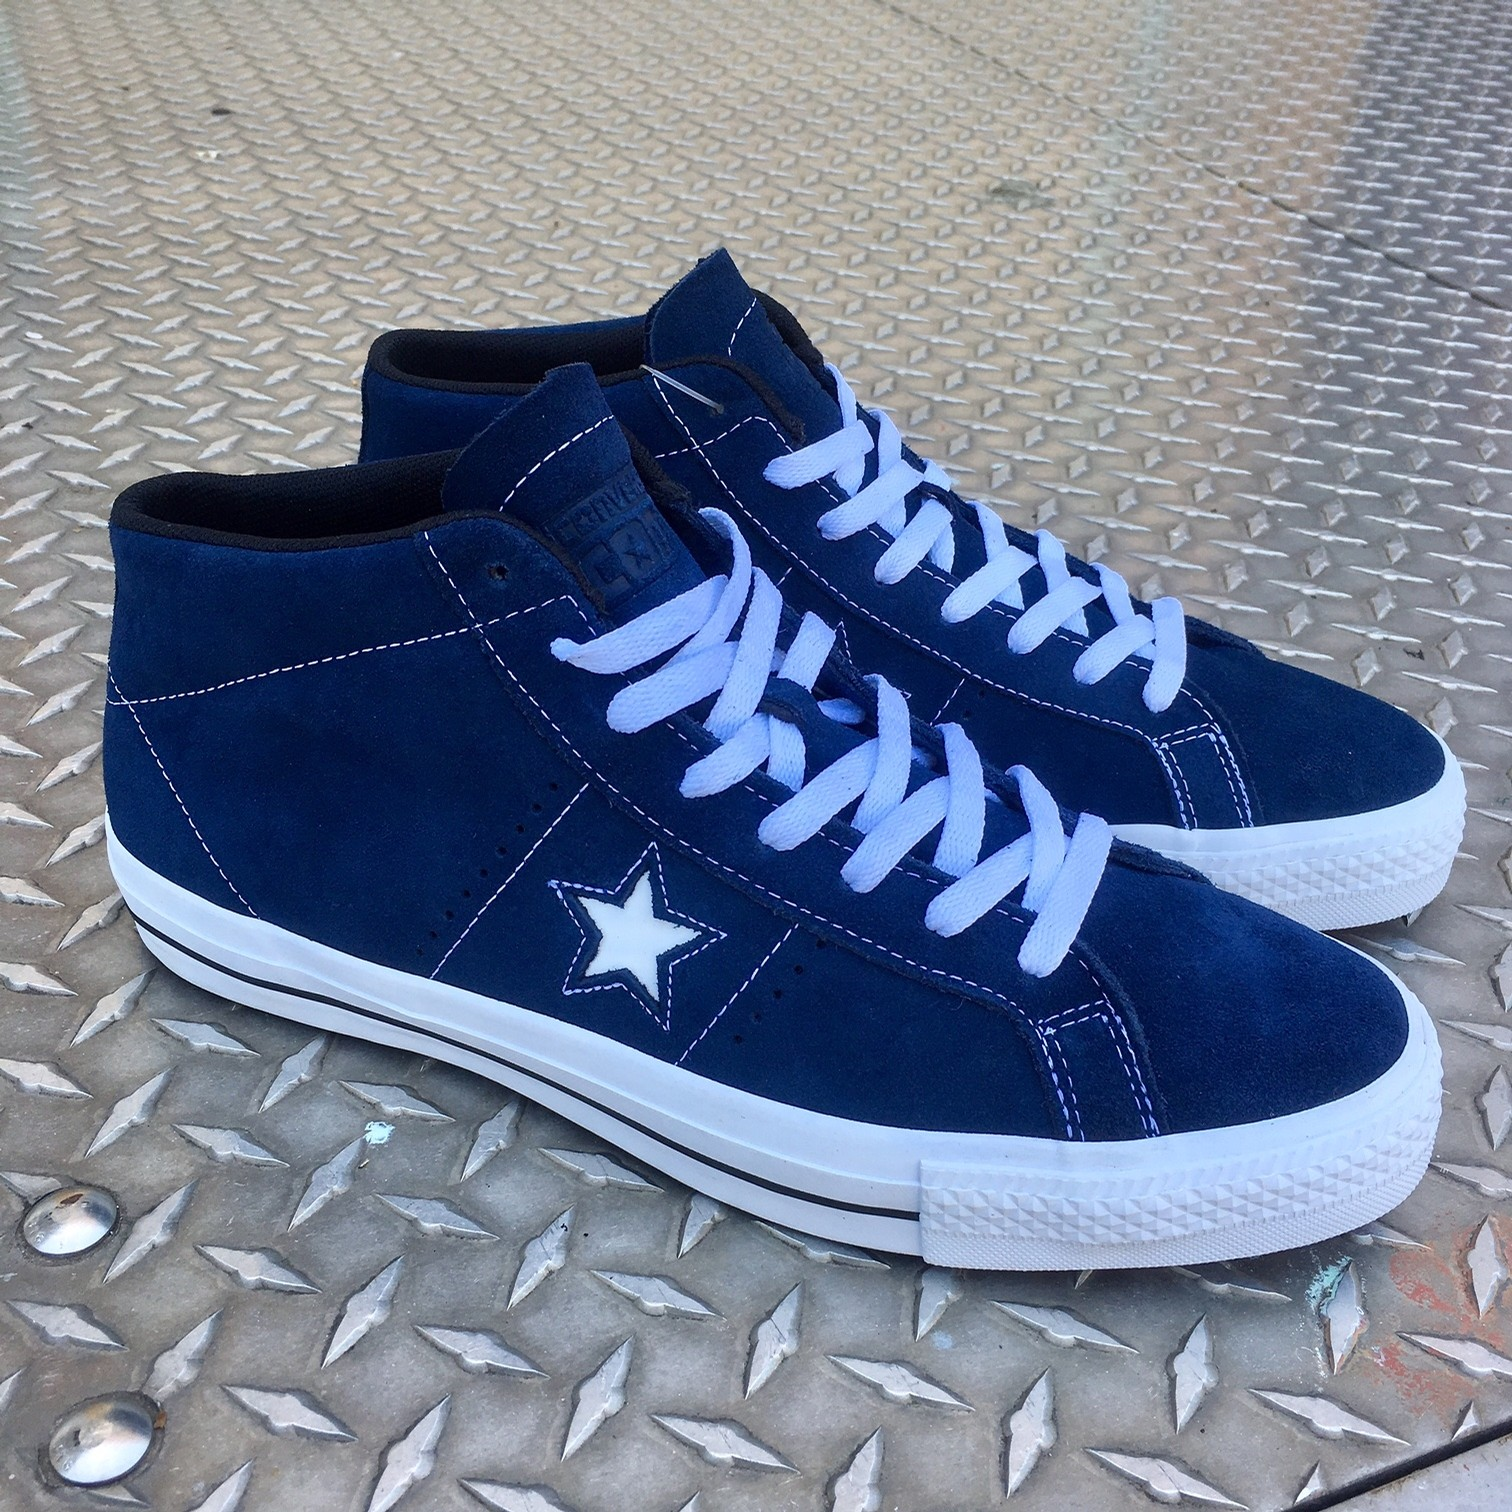 ONE STAR PRO SUEDE MID (NAVY/WHITE/BLACK)